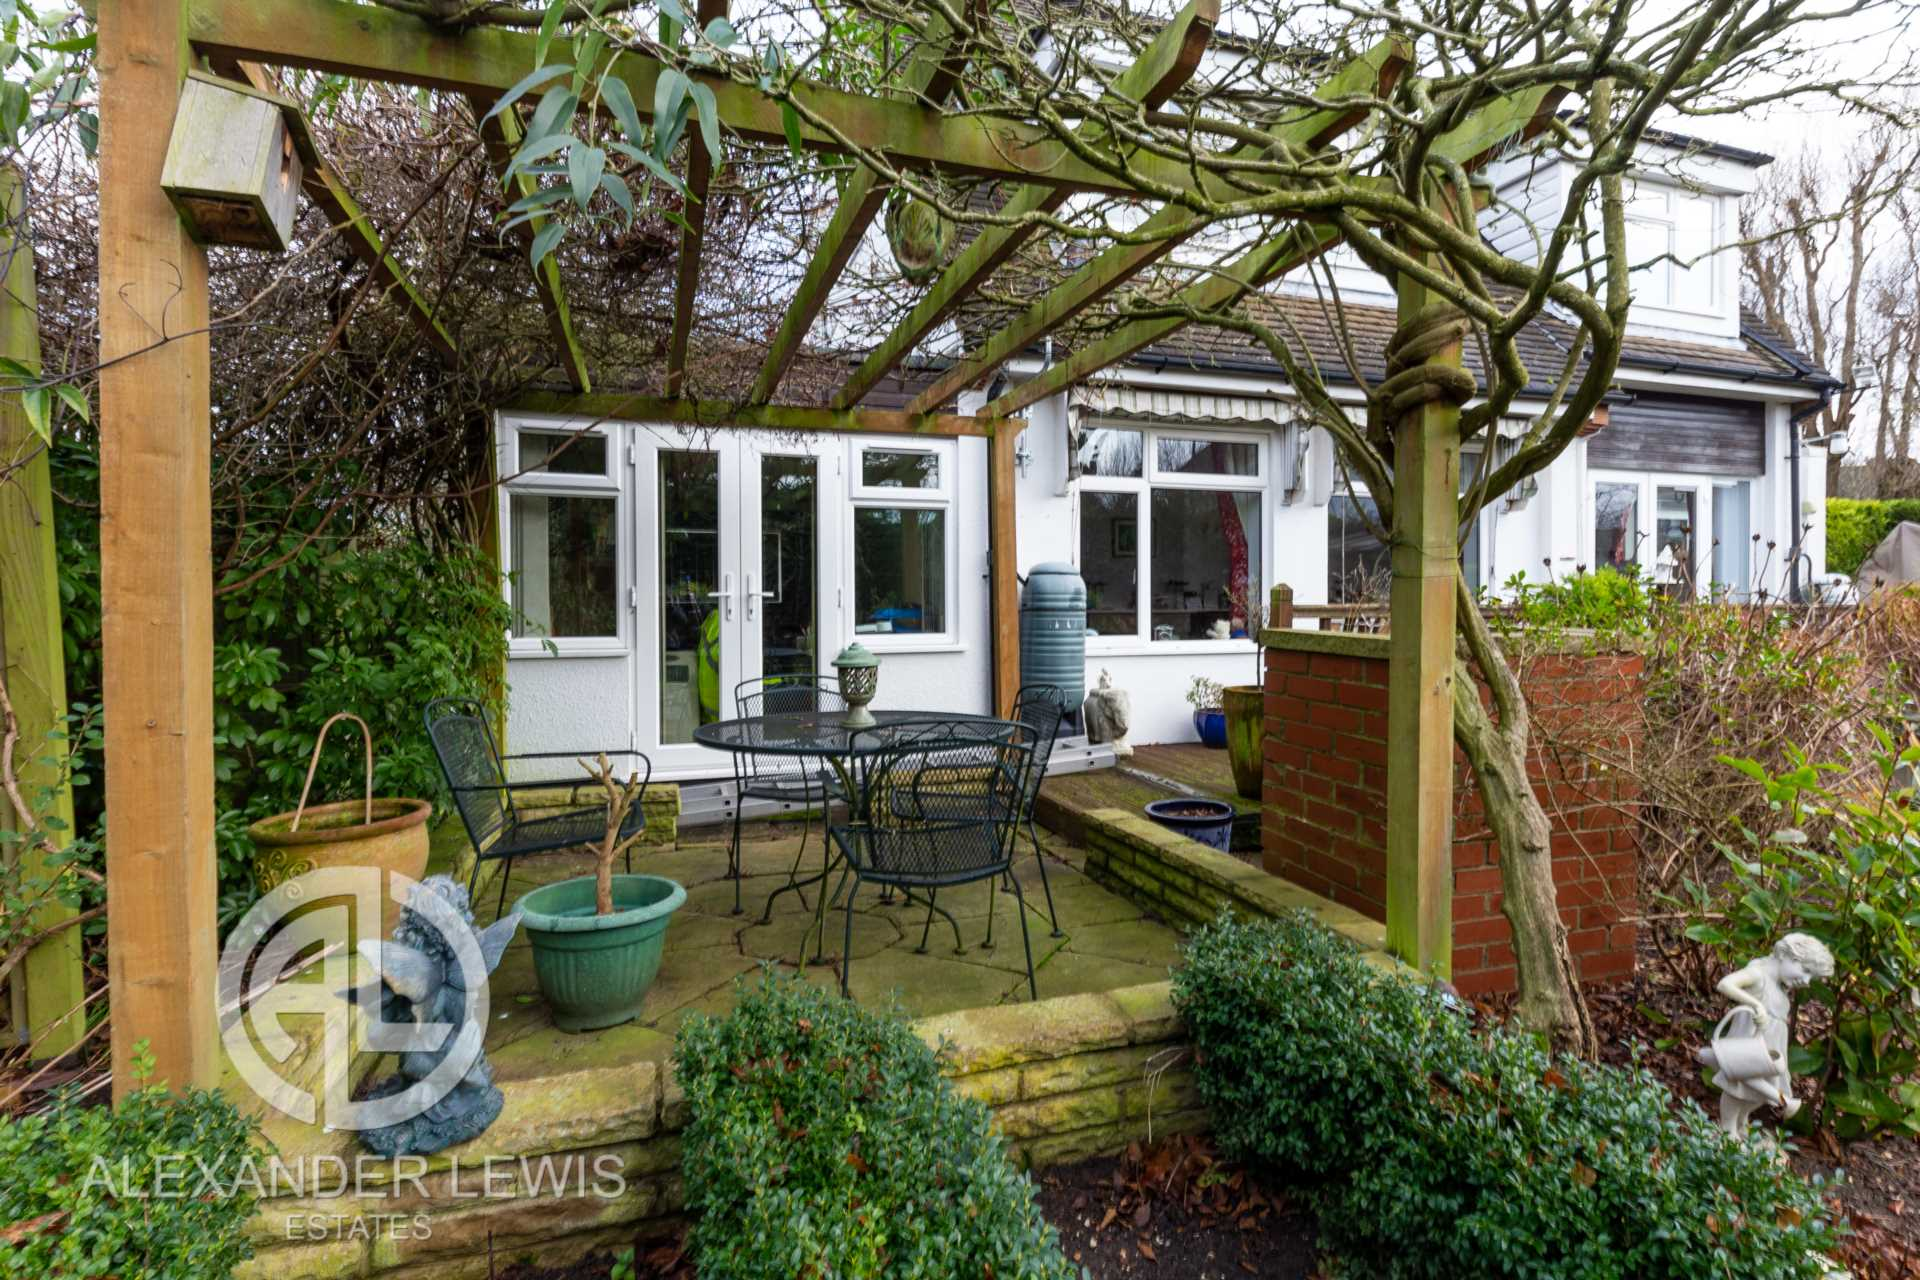 Croft Lane, Letchworth Garden City, SG6 1AP, Image 16